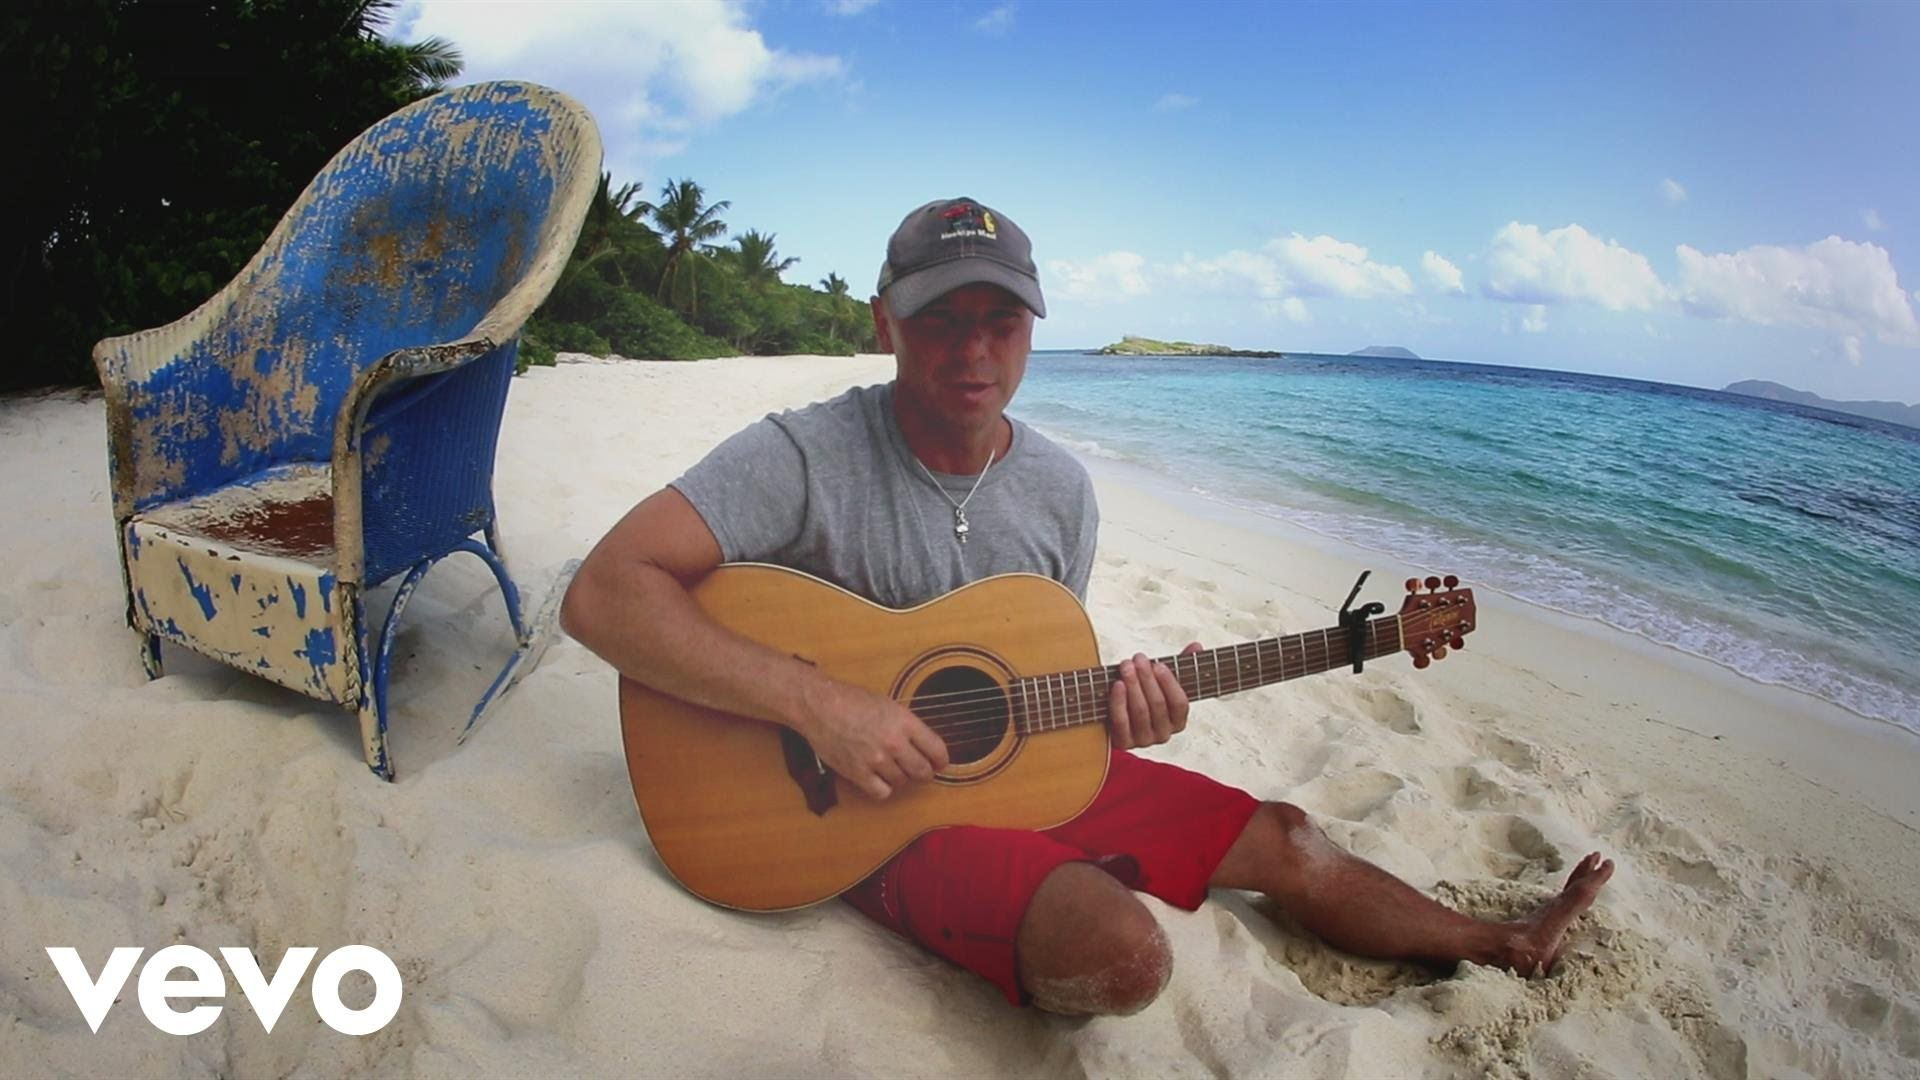 rr - LOVE Kenny Chesney! - Christmas in Blue Chair Bay | Music ...